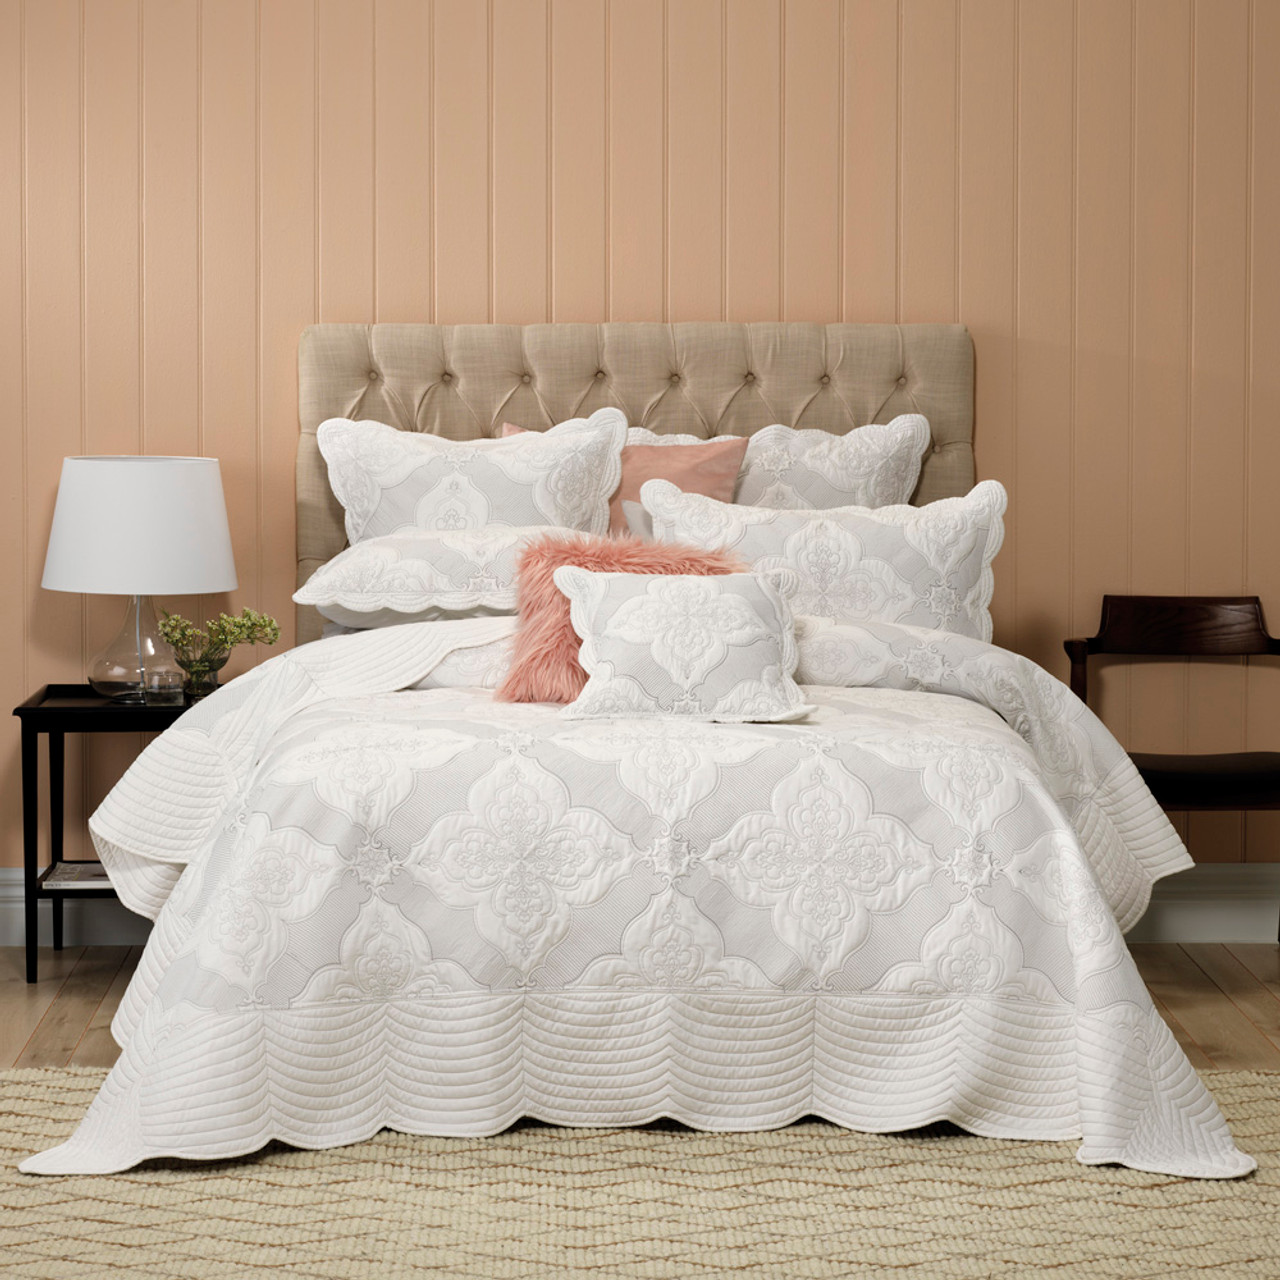 Picture of: Bianca Madison White Bedspread Set Queen Bed My Linen